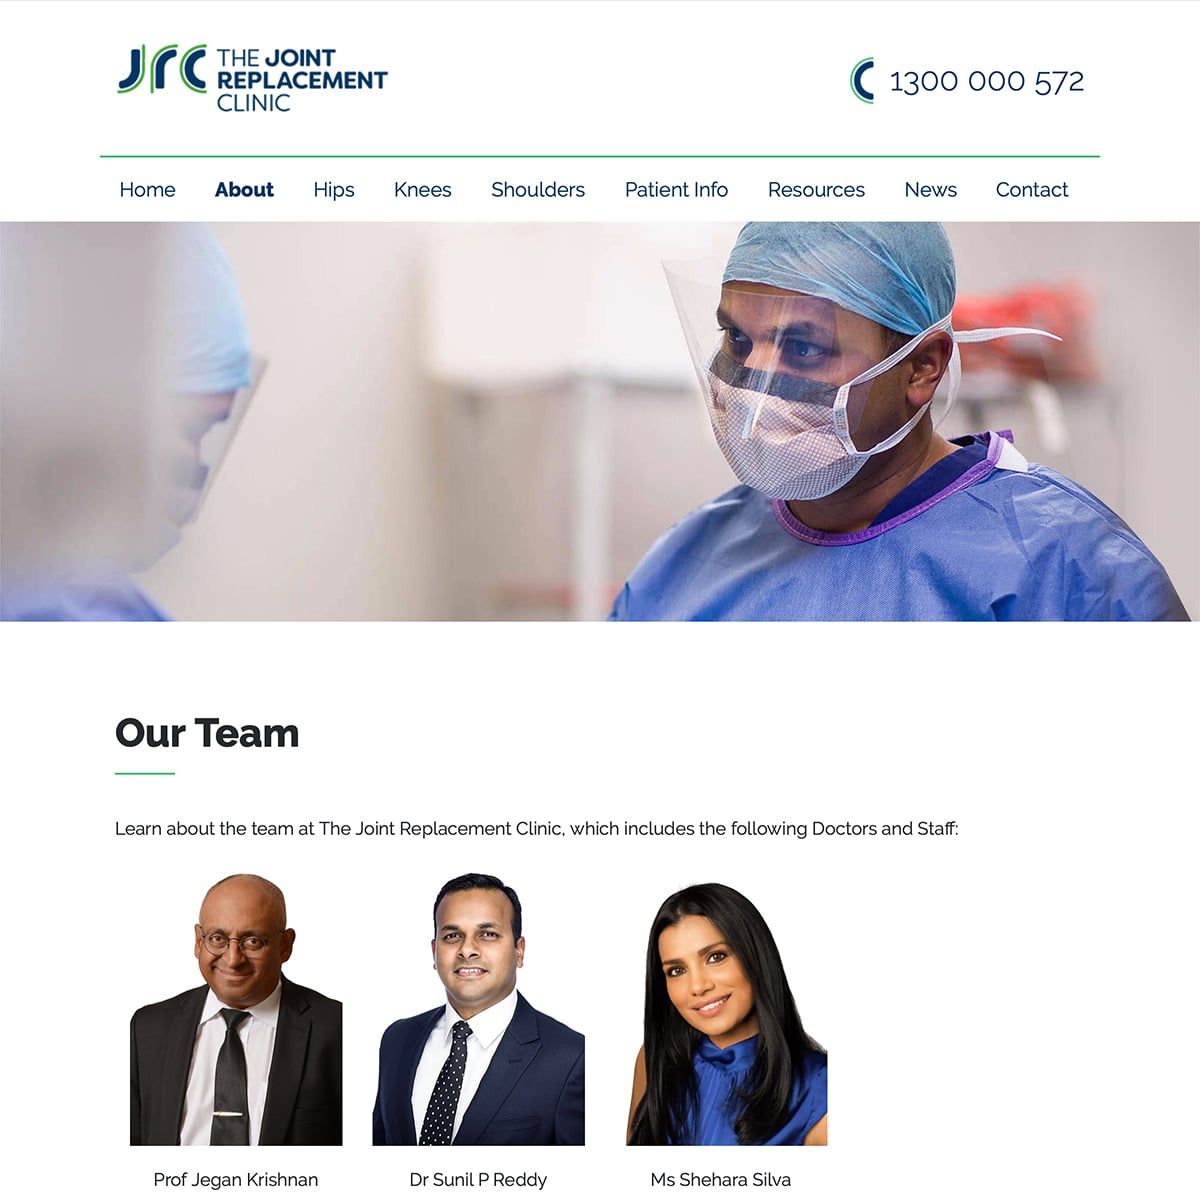 The Joint Replacement Clinic - About